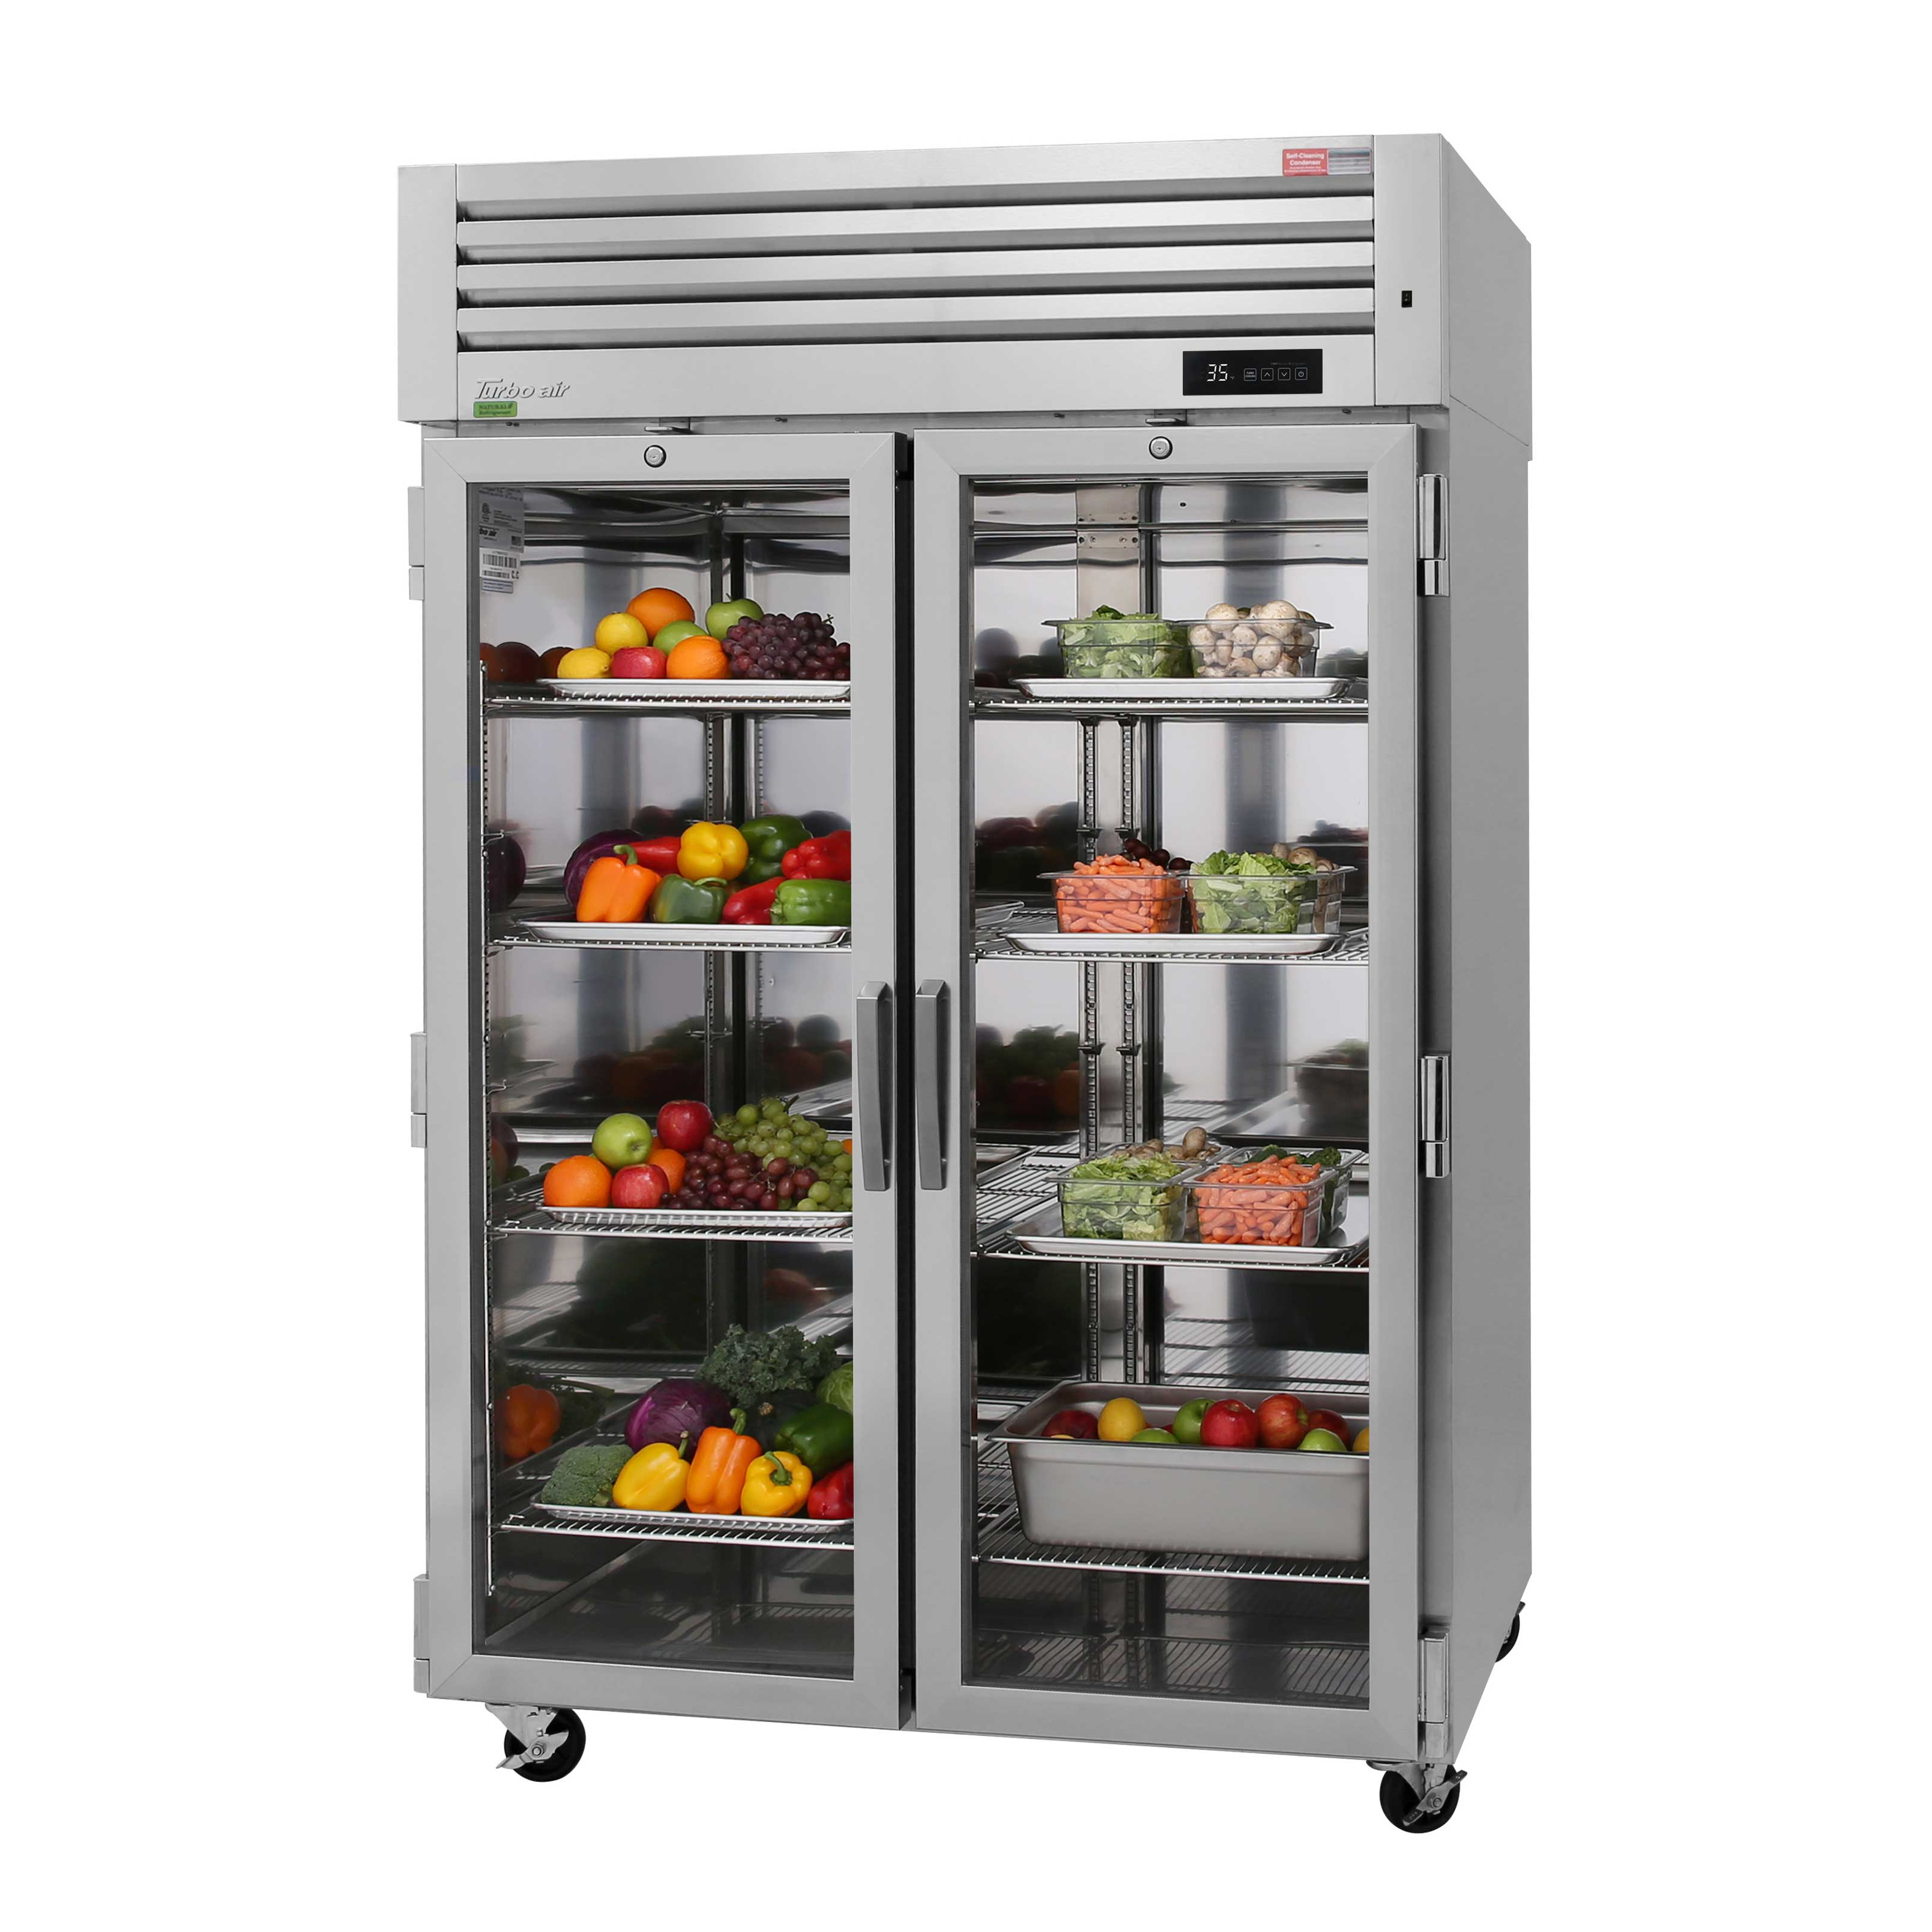 Turbo Air PRO-50R-G-N refrigerator, reach-in